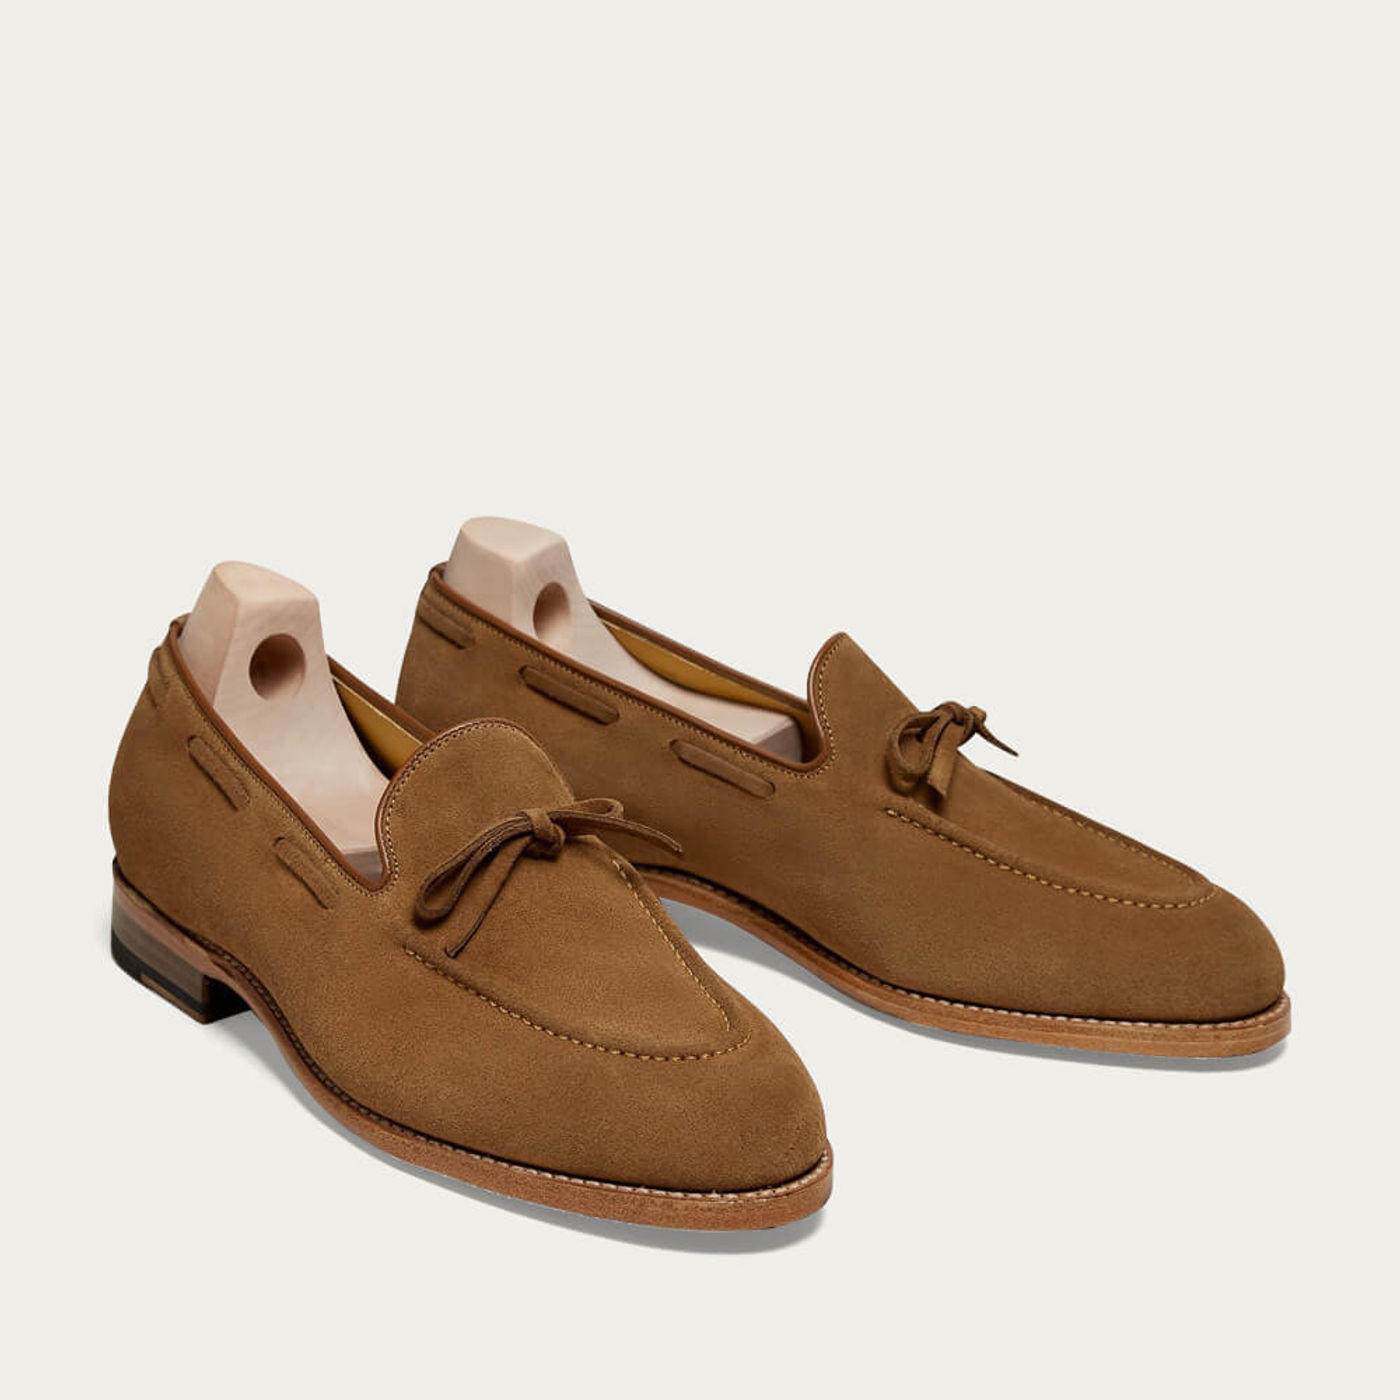 Chestnut Fårö Suede Loafers with Leather Sole   Bombinate